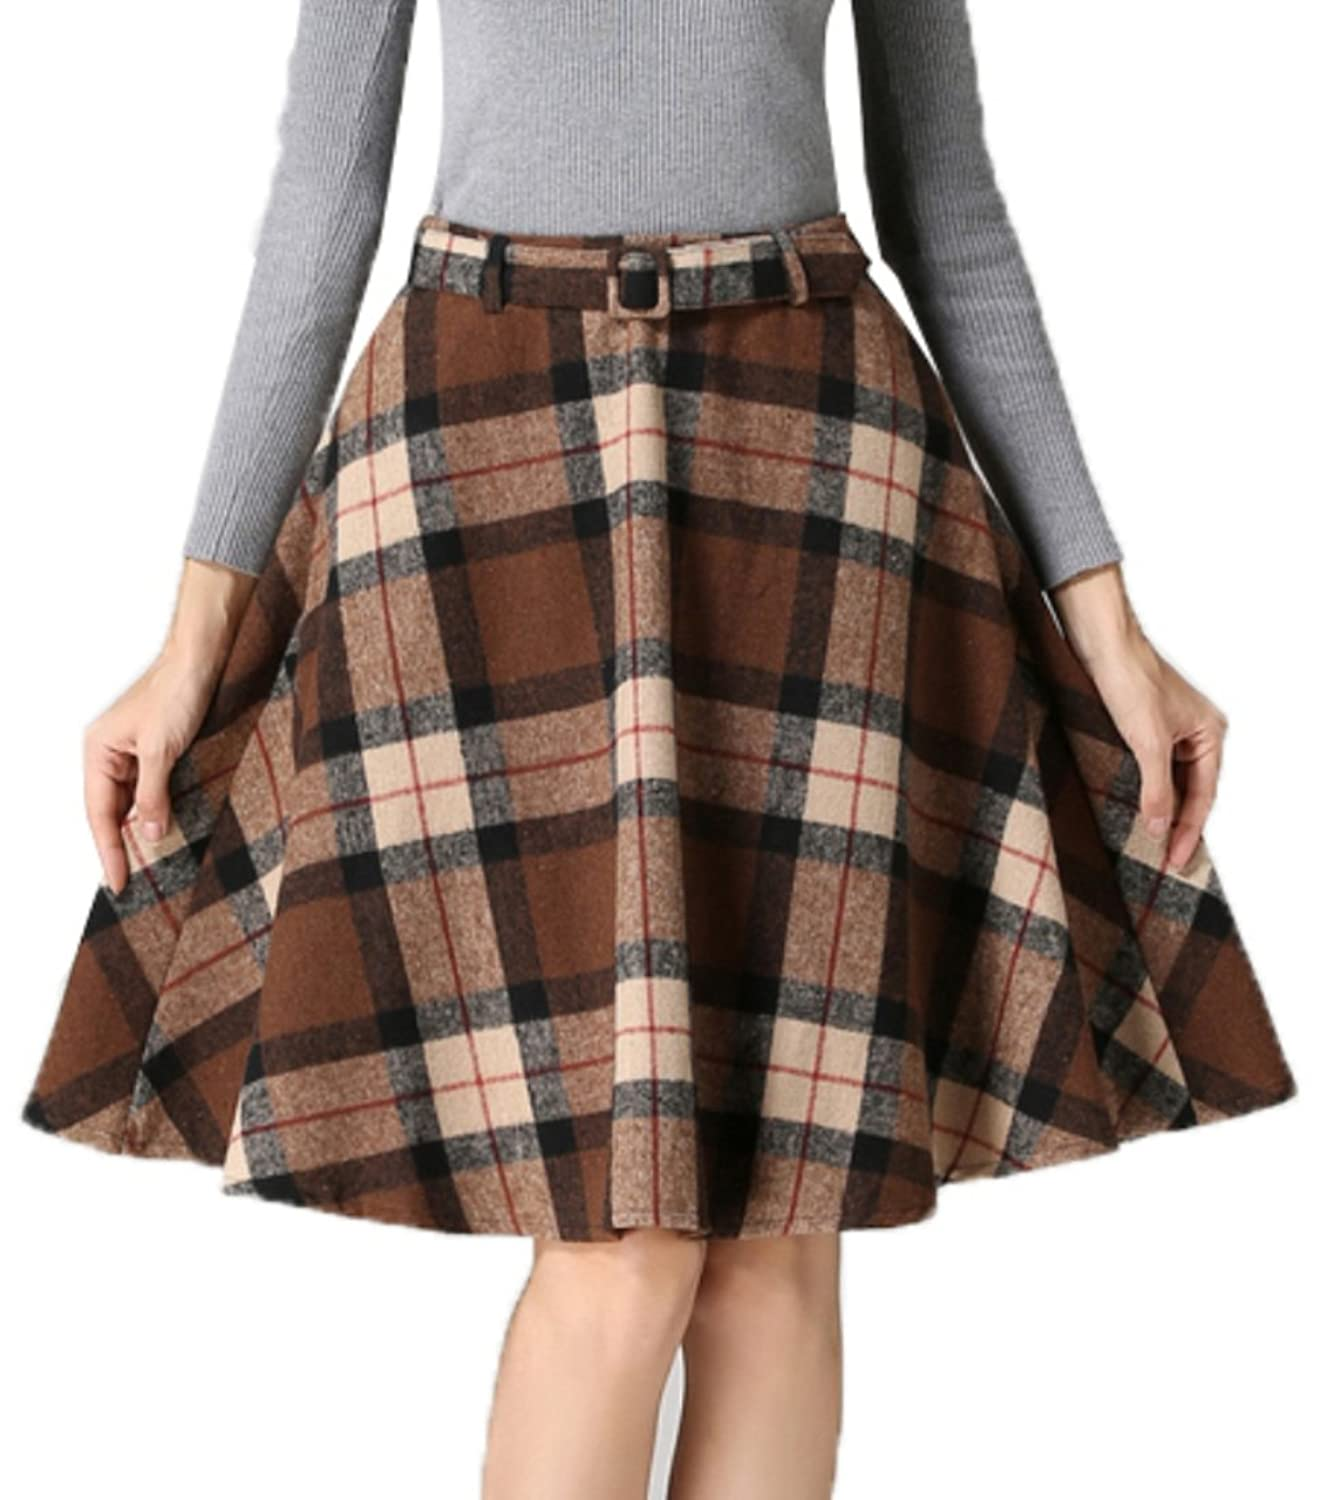 1940s Style Skirts: A-line, Pencil, Jumper Skirts